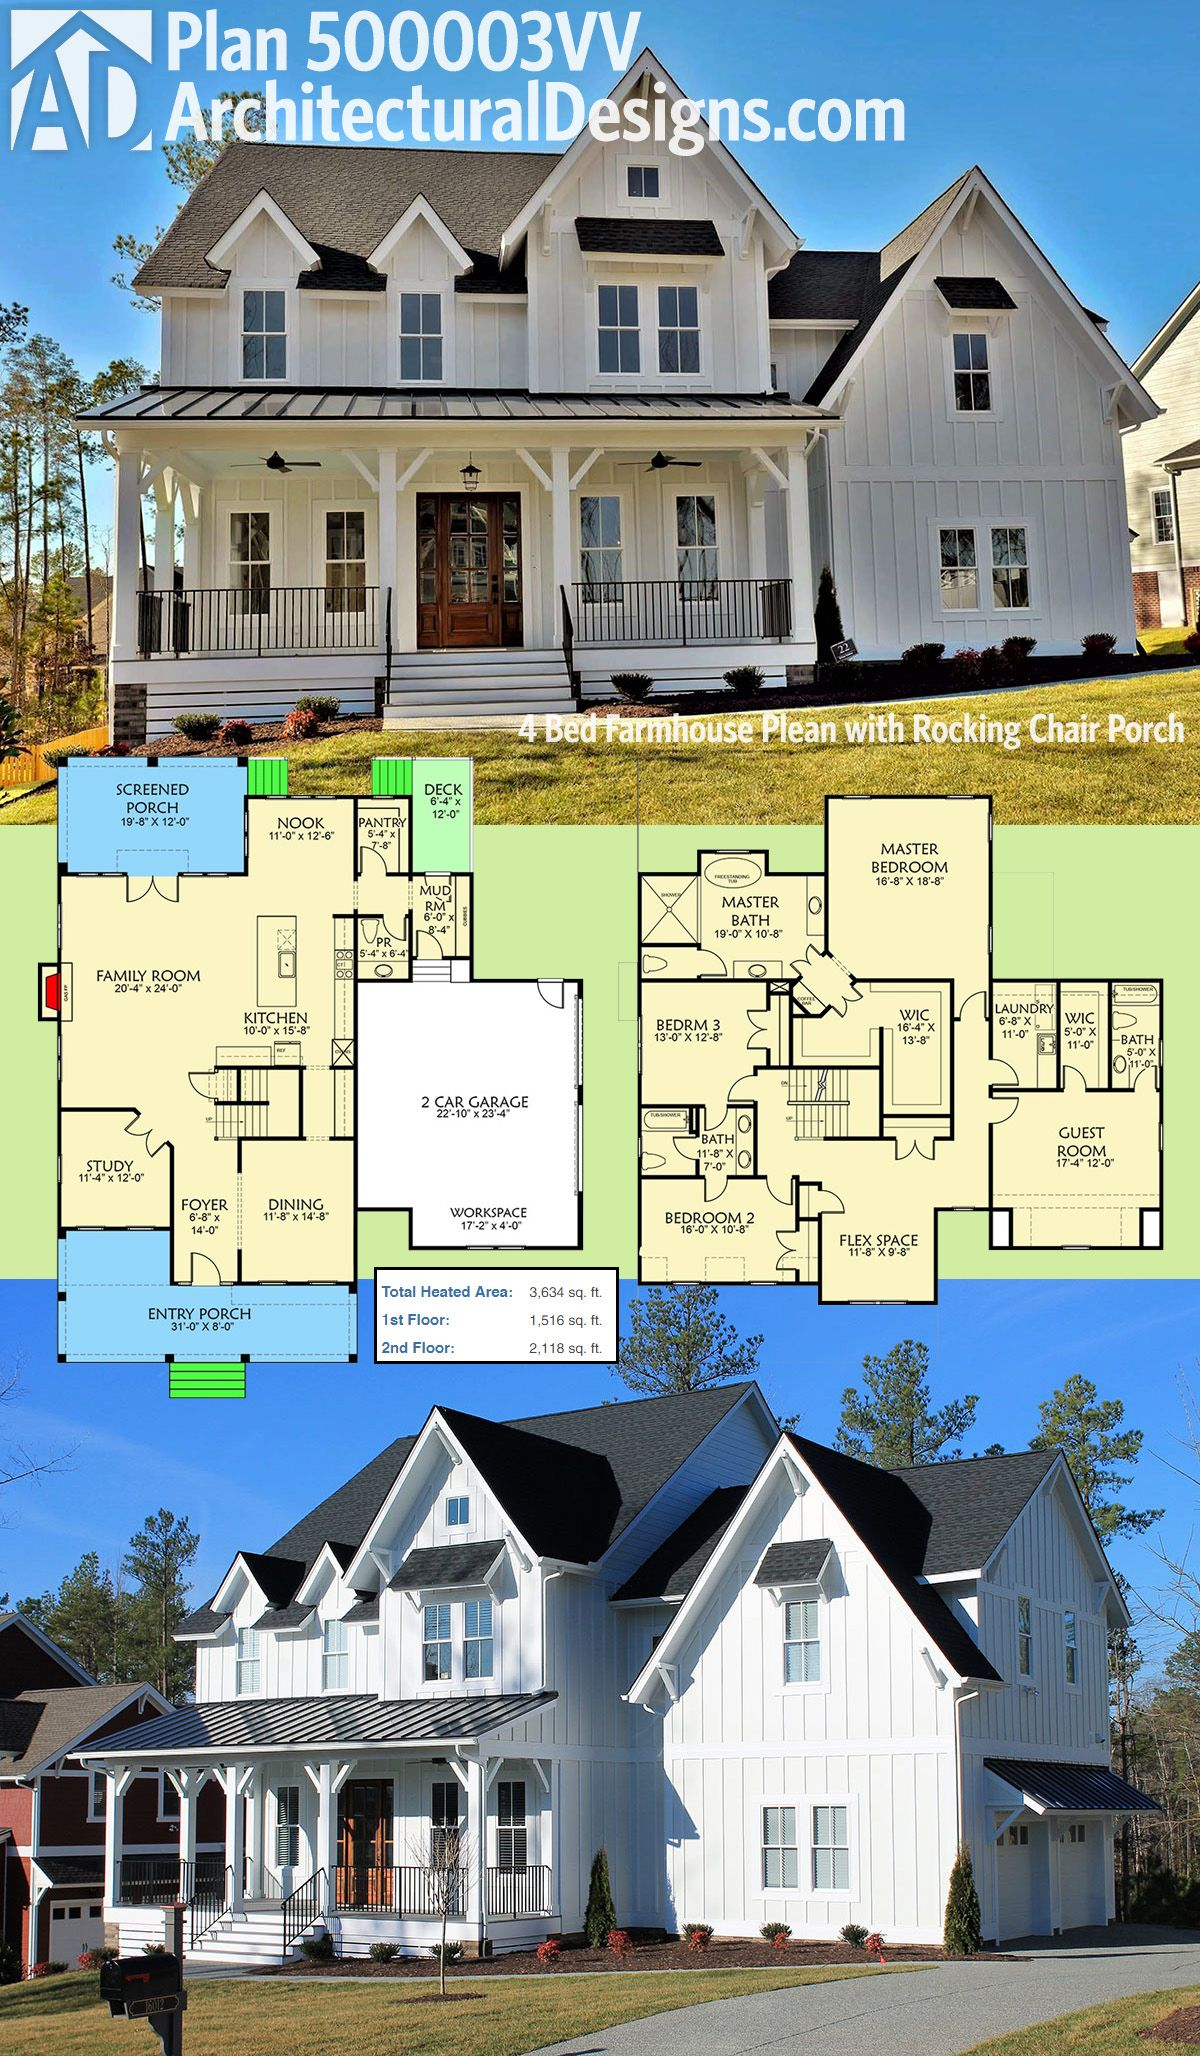 Plan 500003vv 4 bed farmhouse plan with rocking chair for Architectural designs farmhouse